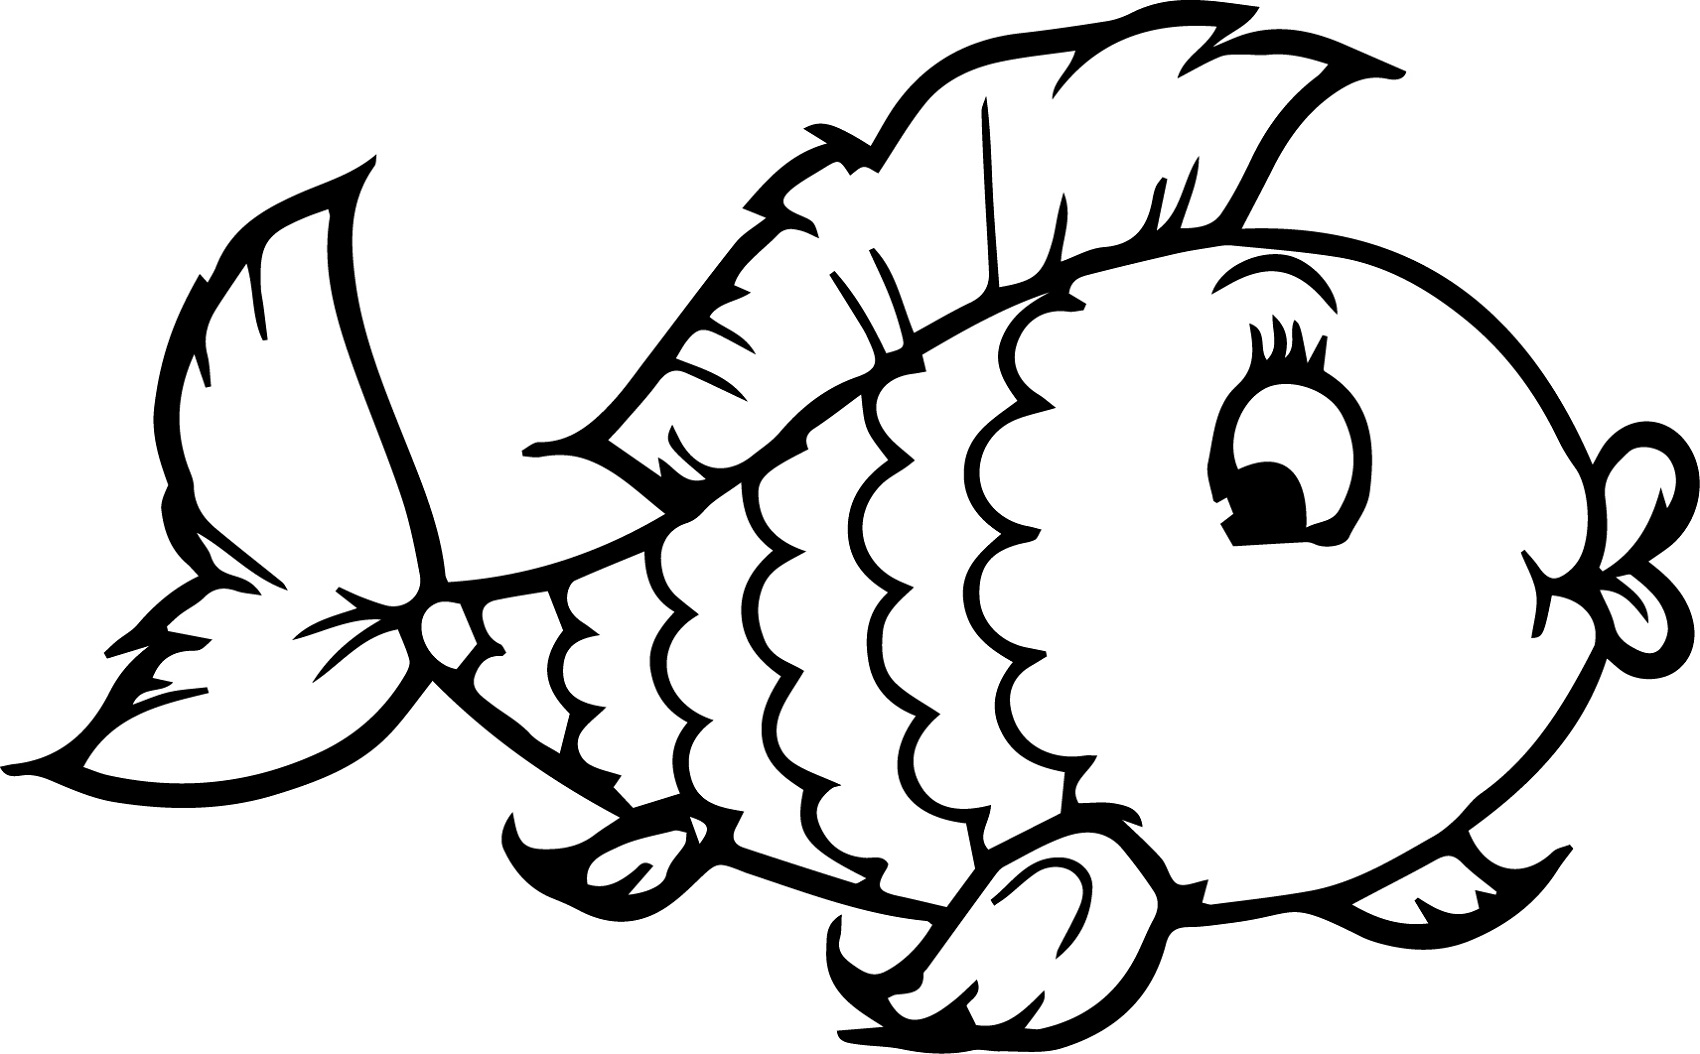 Coloring Sheets For Kindergarten Fish Learning Printable